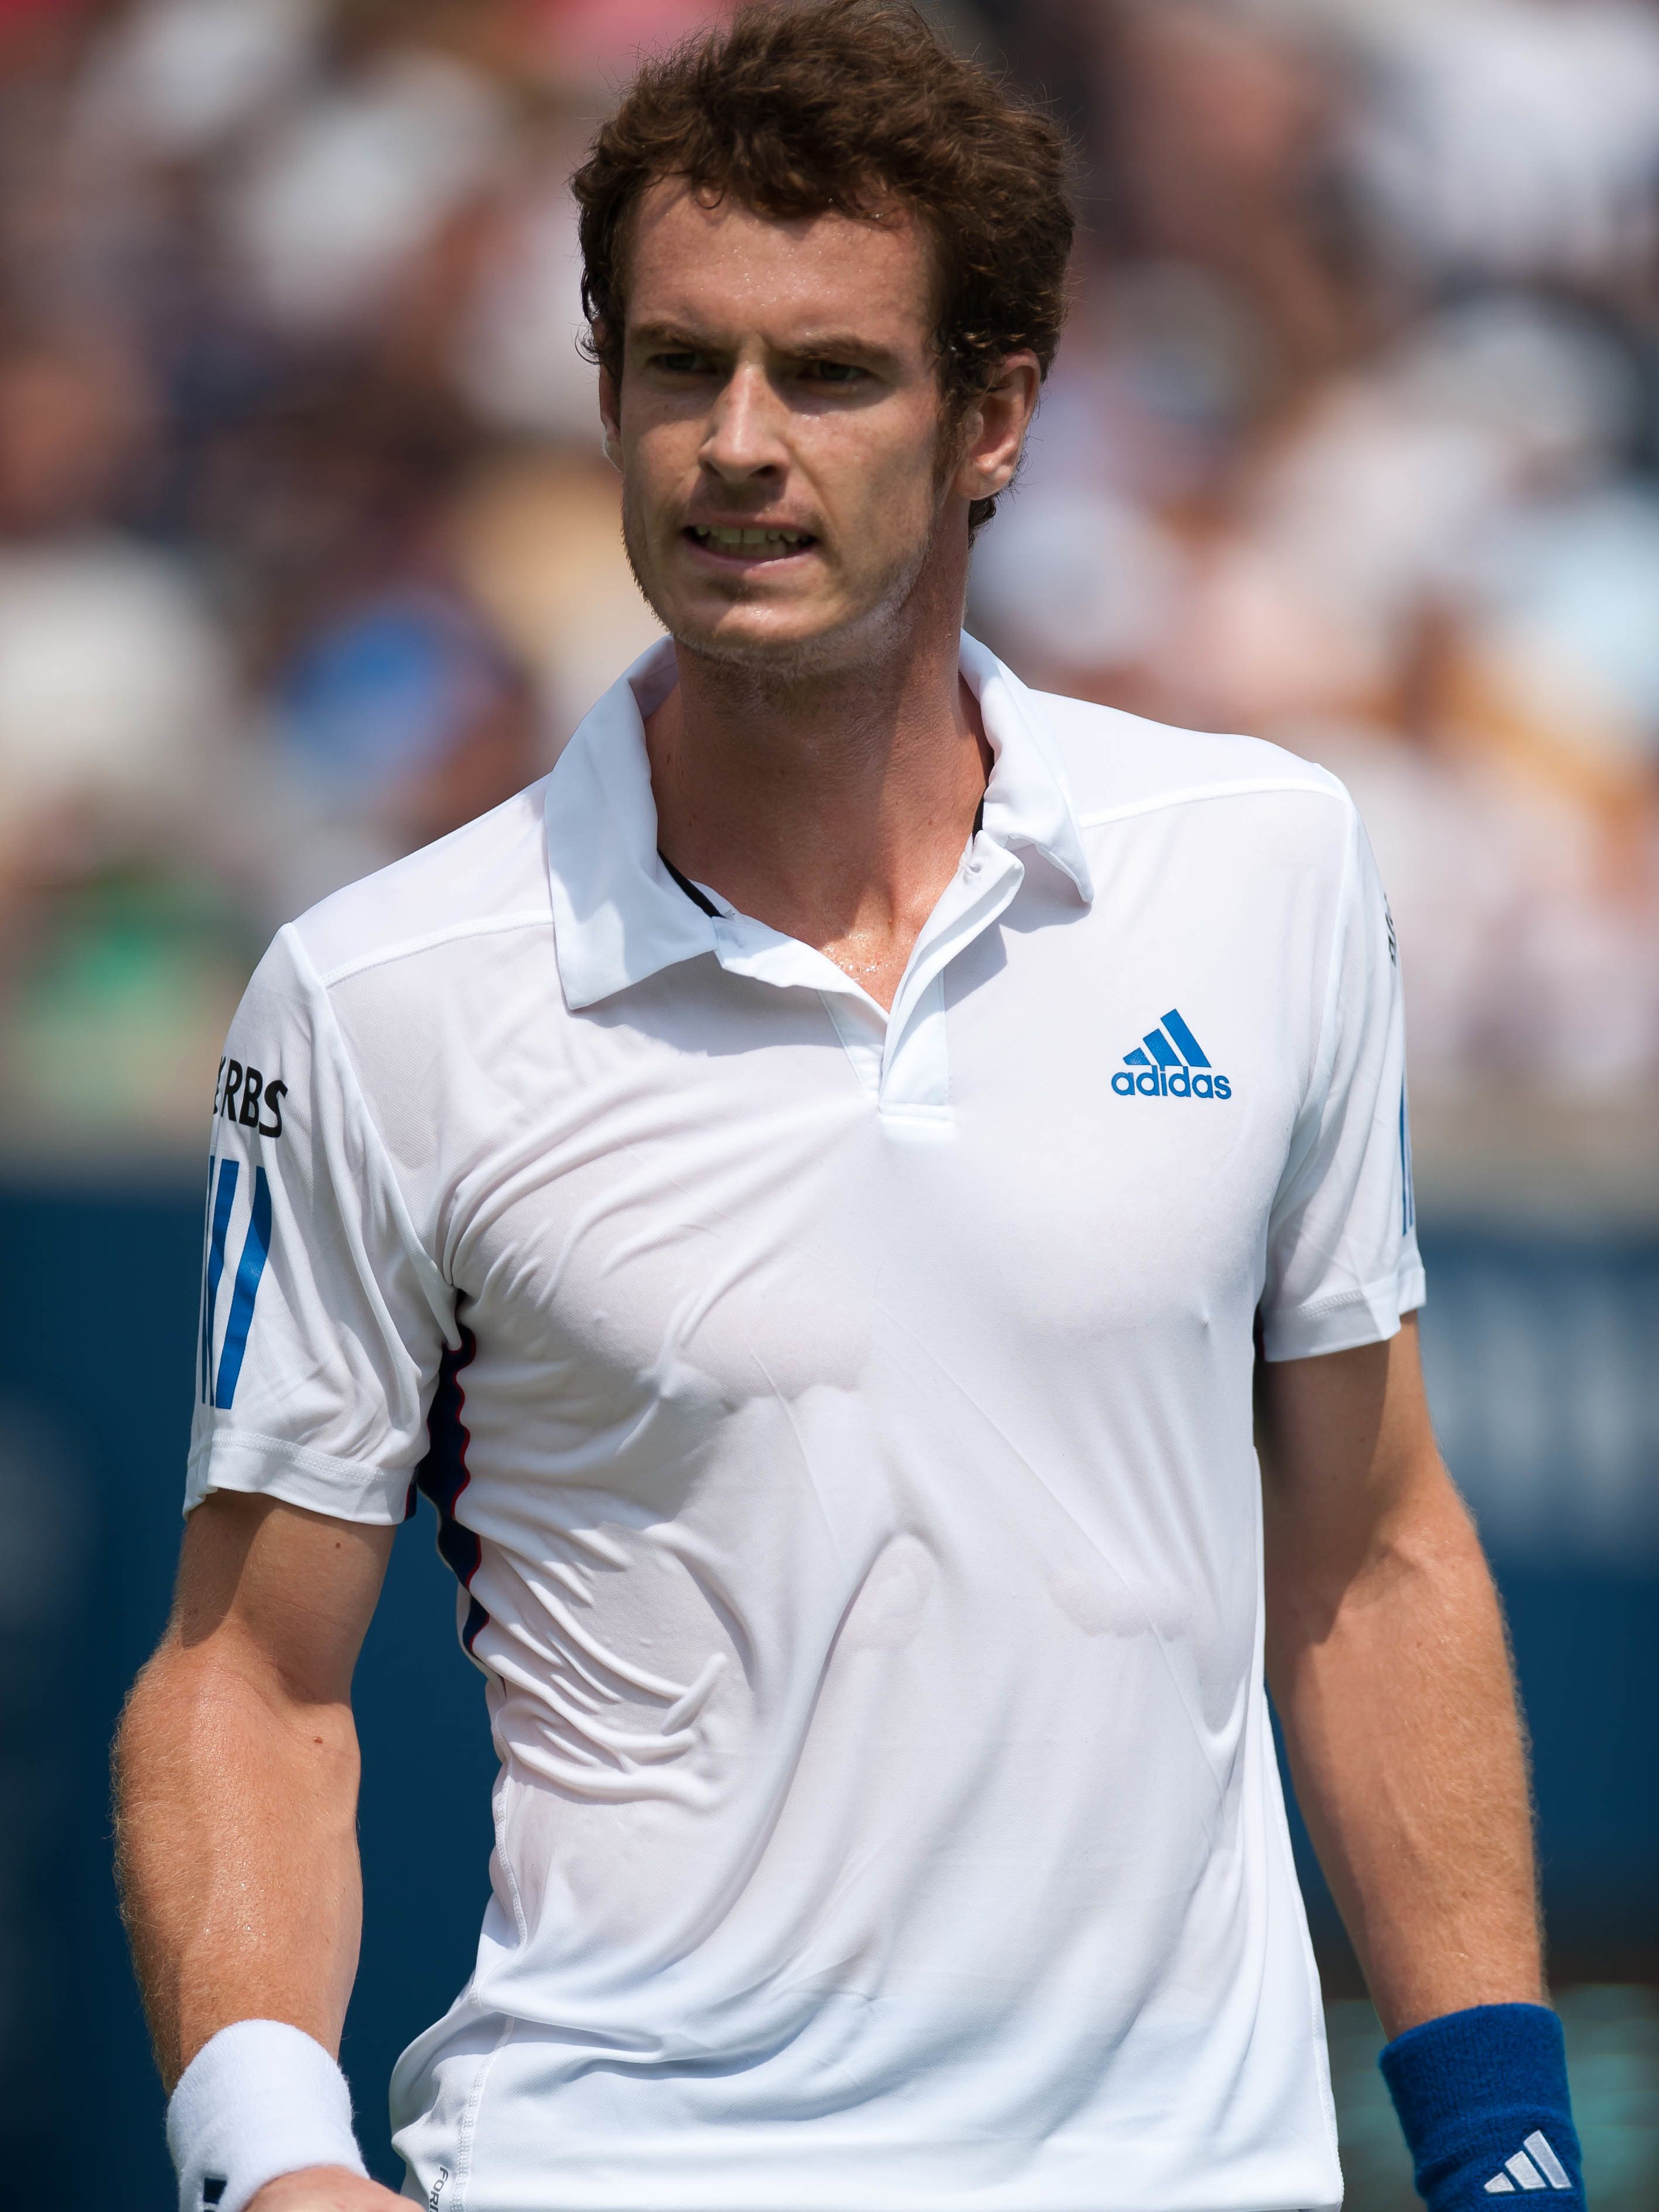 Which tennis rival do you root for? Andy Murray or Roger Federer? Vote here: http://www.opinionstage.com/polls/2278526